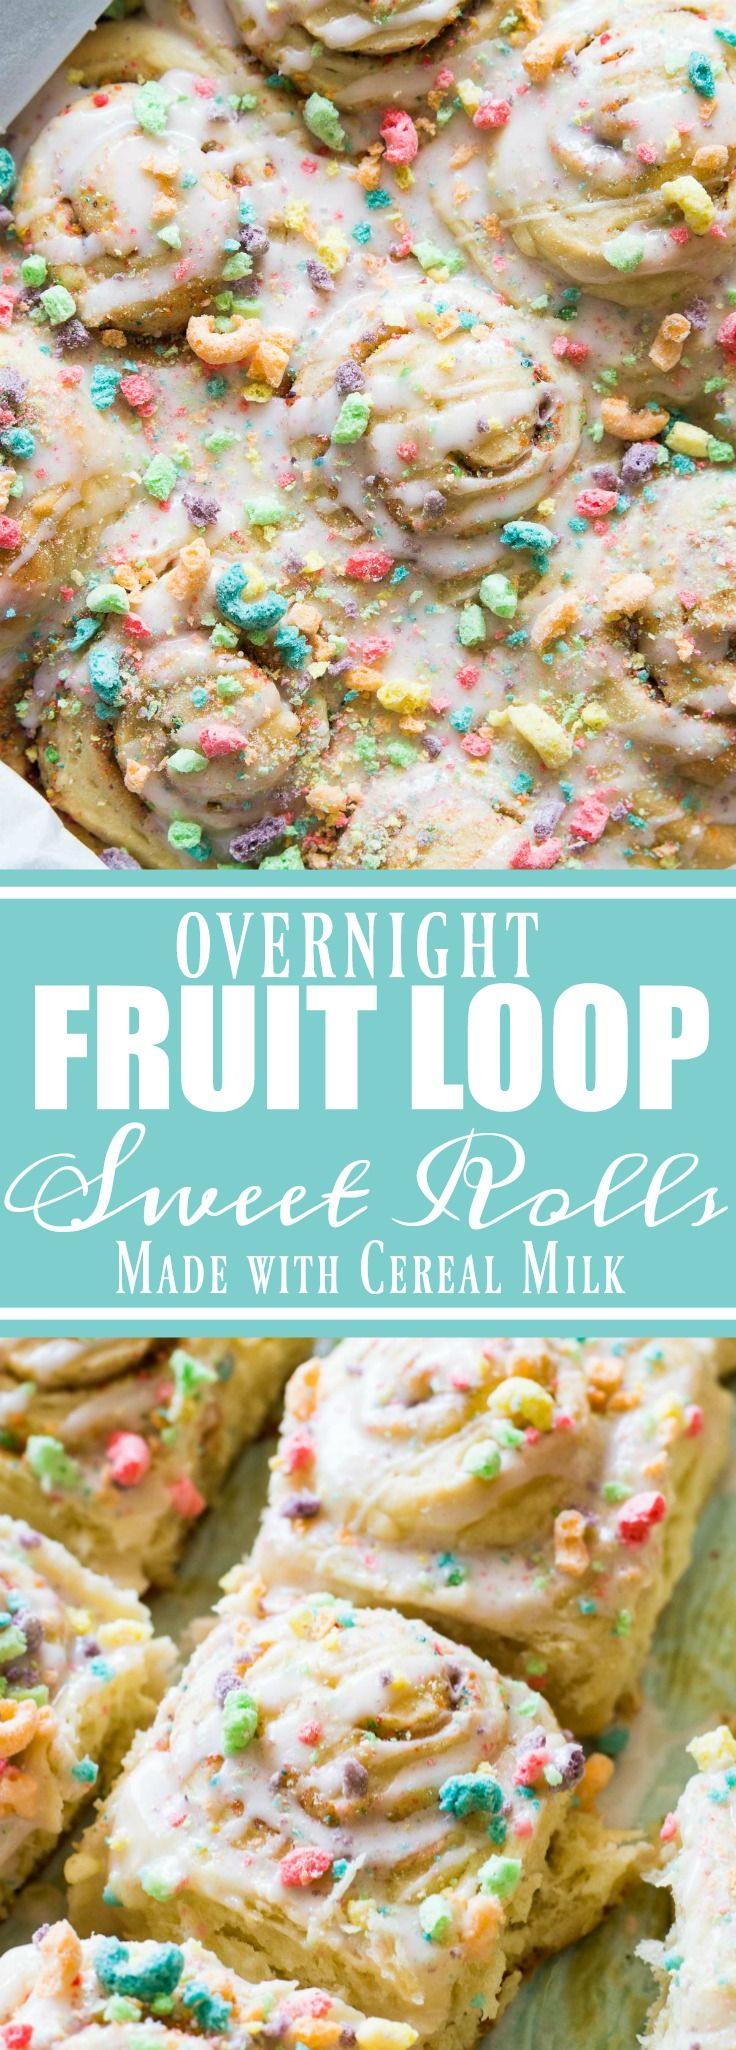 Get a head start on breakfast by prepping these Fruit Loop sweet rolls the night before!  Made with actual fruity cereal milk, loaded with pieces of fruit loops, and all drizzled with a fruity cereal milk glaze.